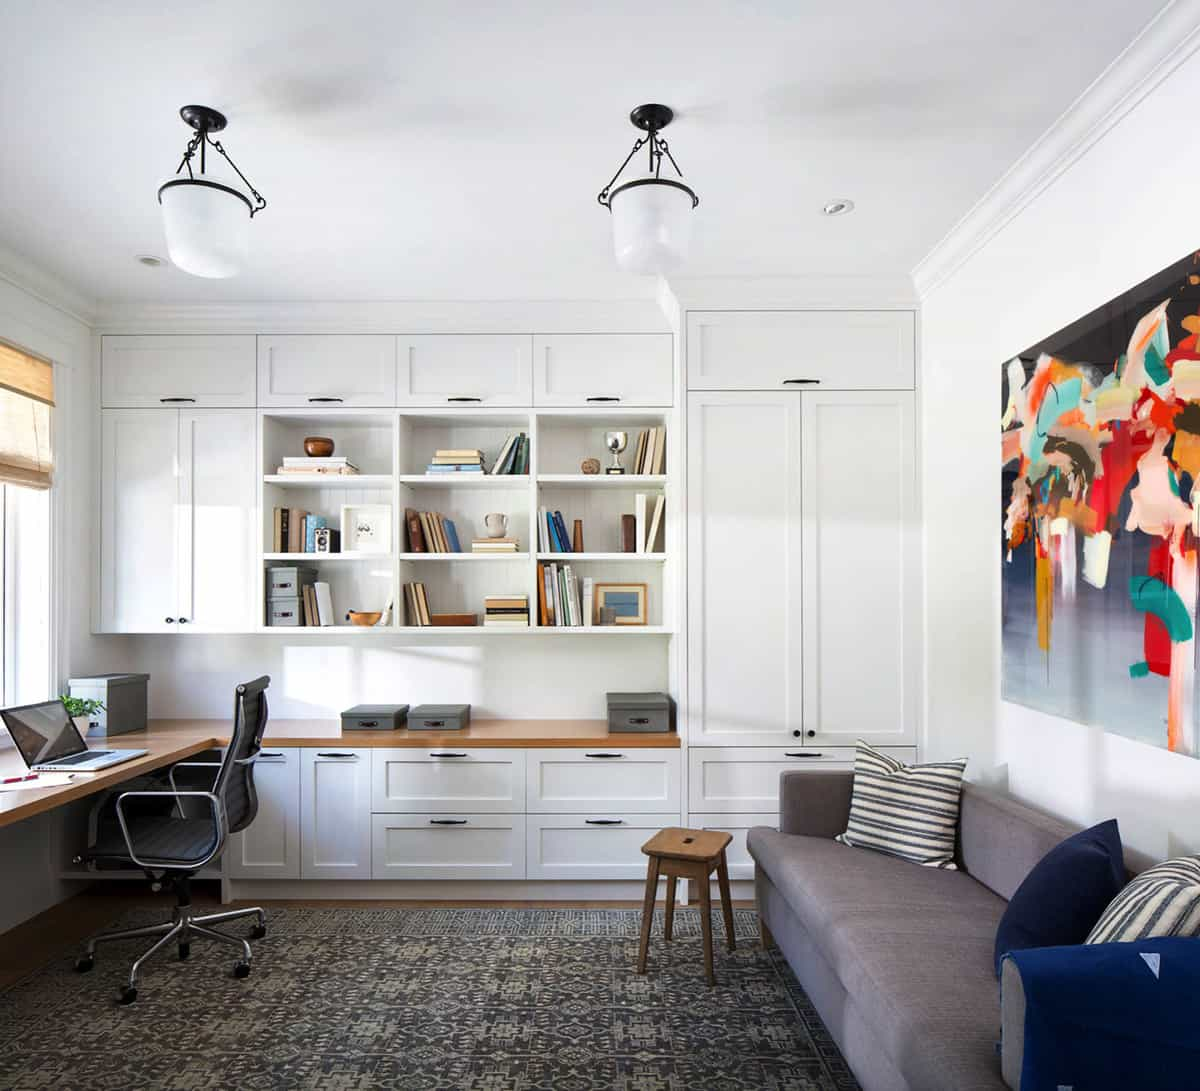 large-home-office-with-open-shelves-and-cabinets